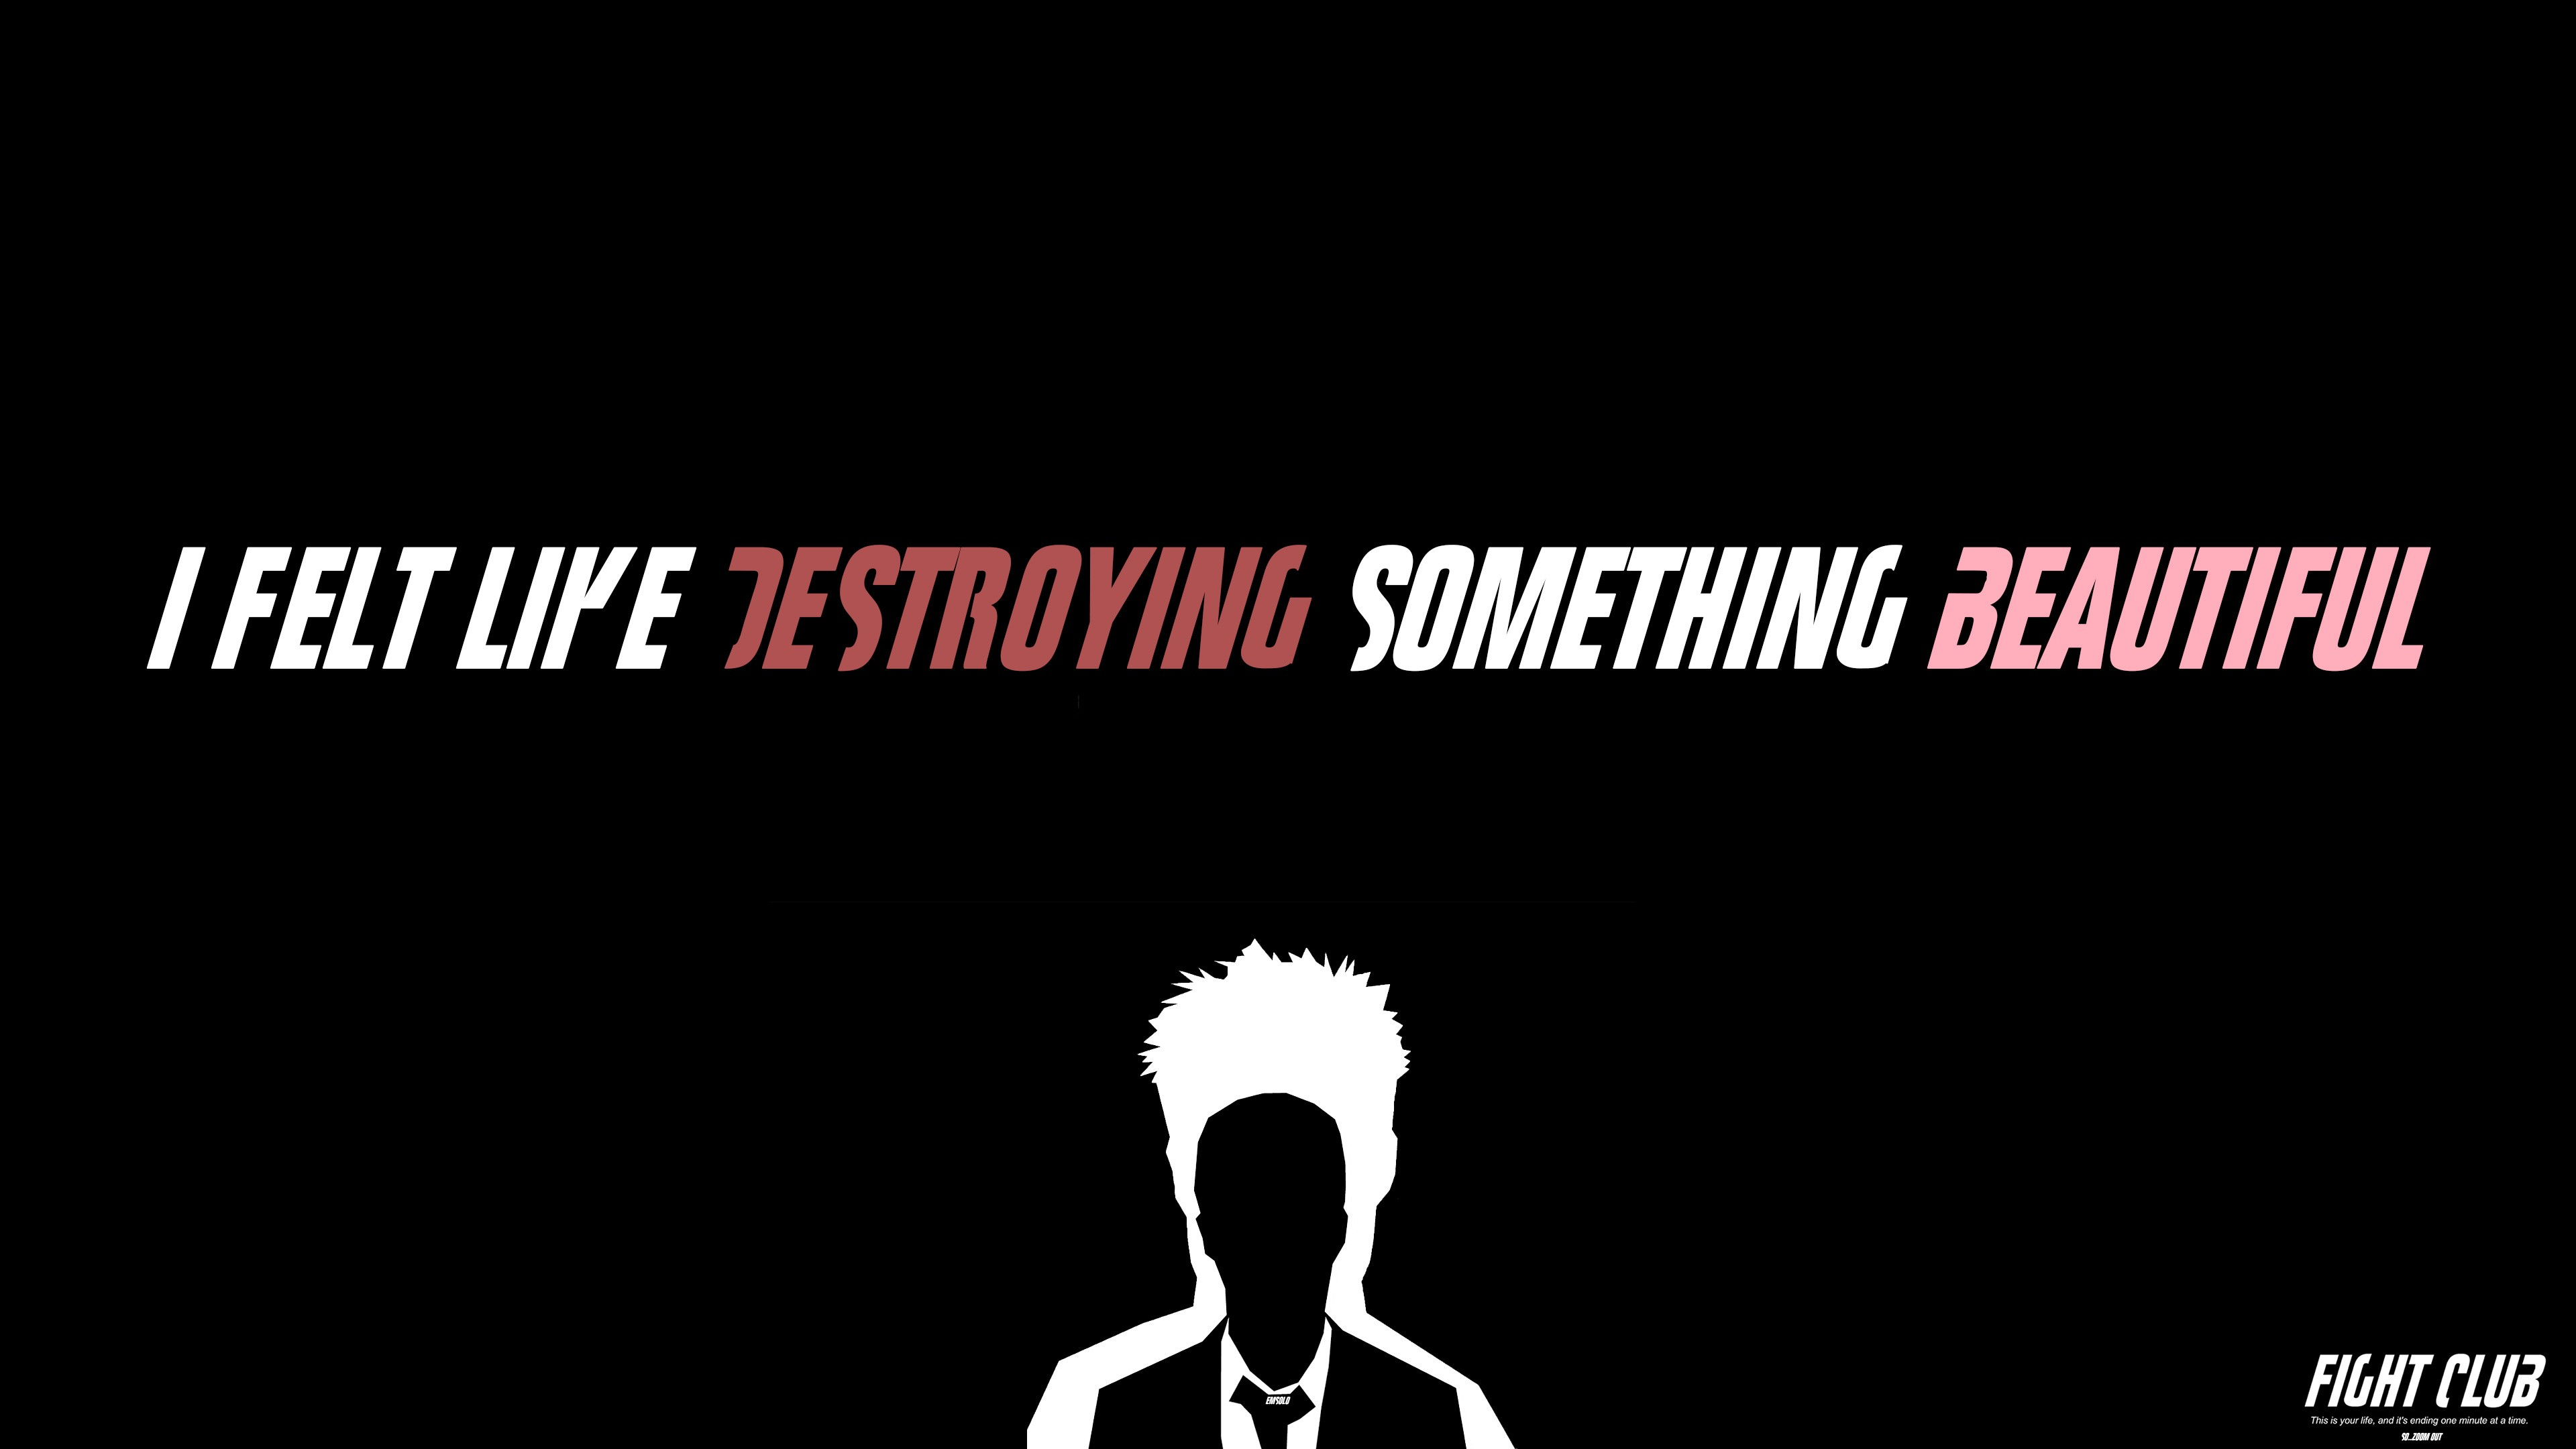 Fight Club Typography Hd Typography 4k Wallpapers Images